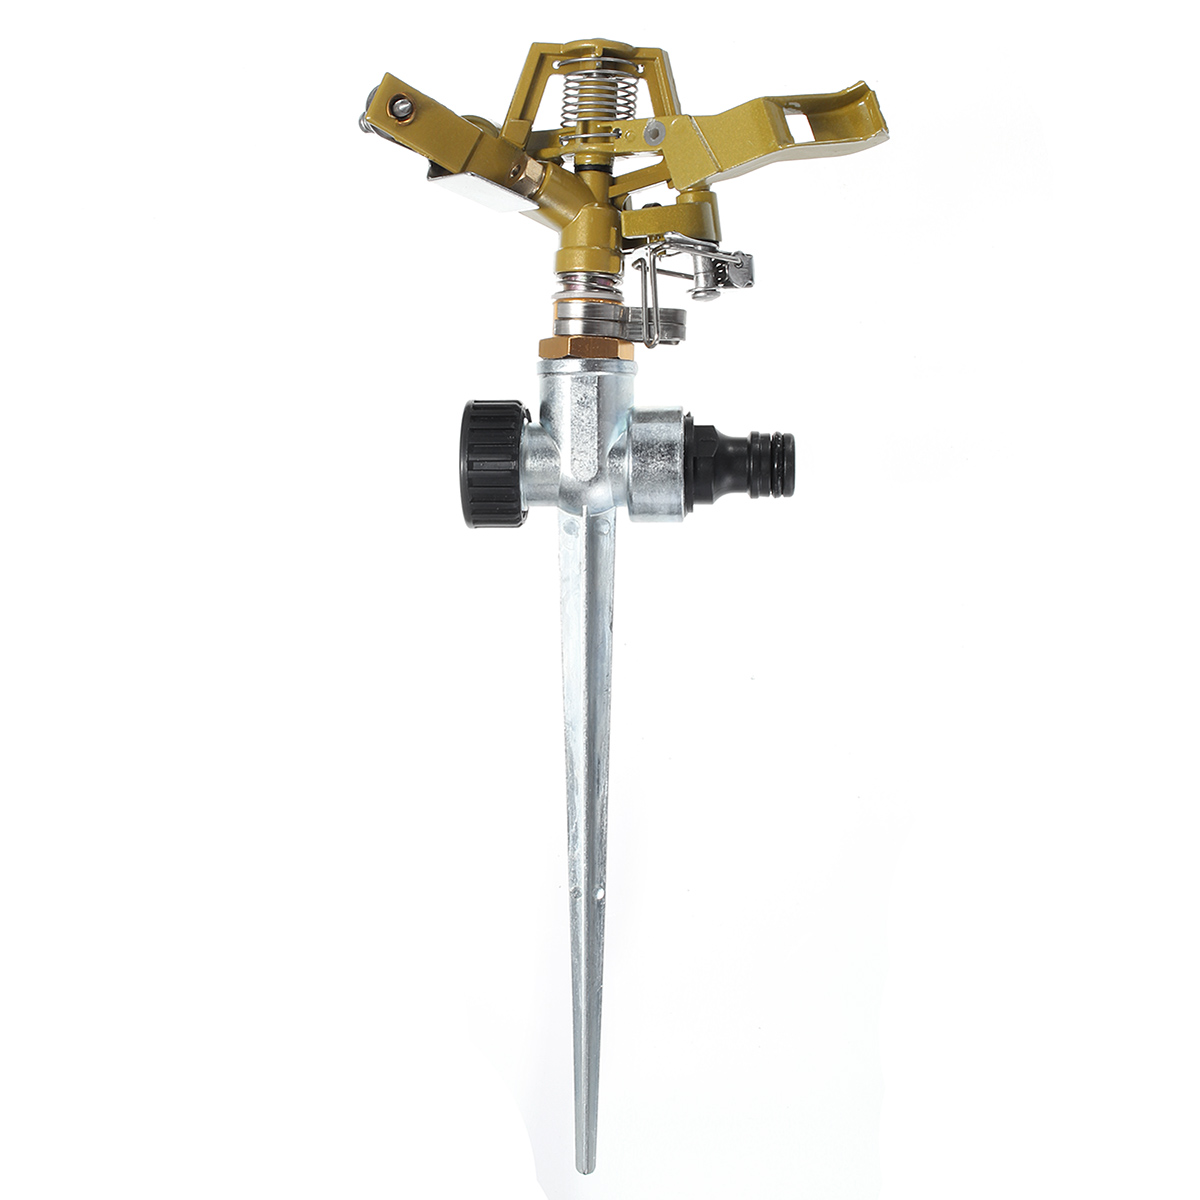 Zinc Alloy 360 Degree Rotary Irrigation Sprayer Sprinkler For Home Garden Yard Lawn Watering Supplies Gardening Tools Device